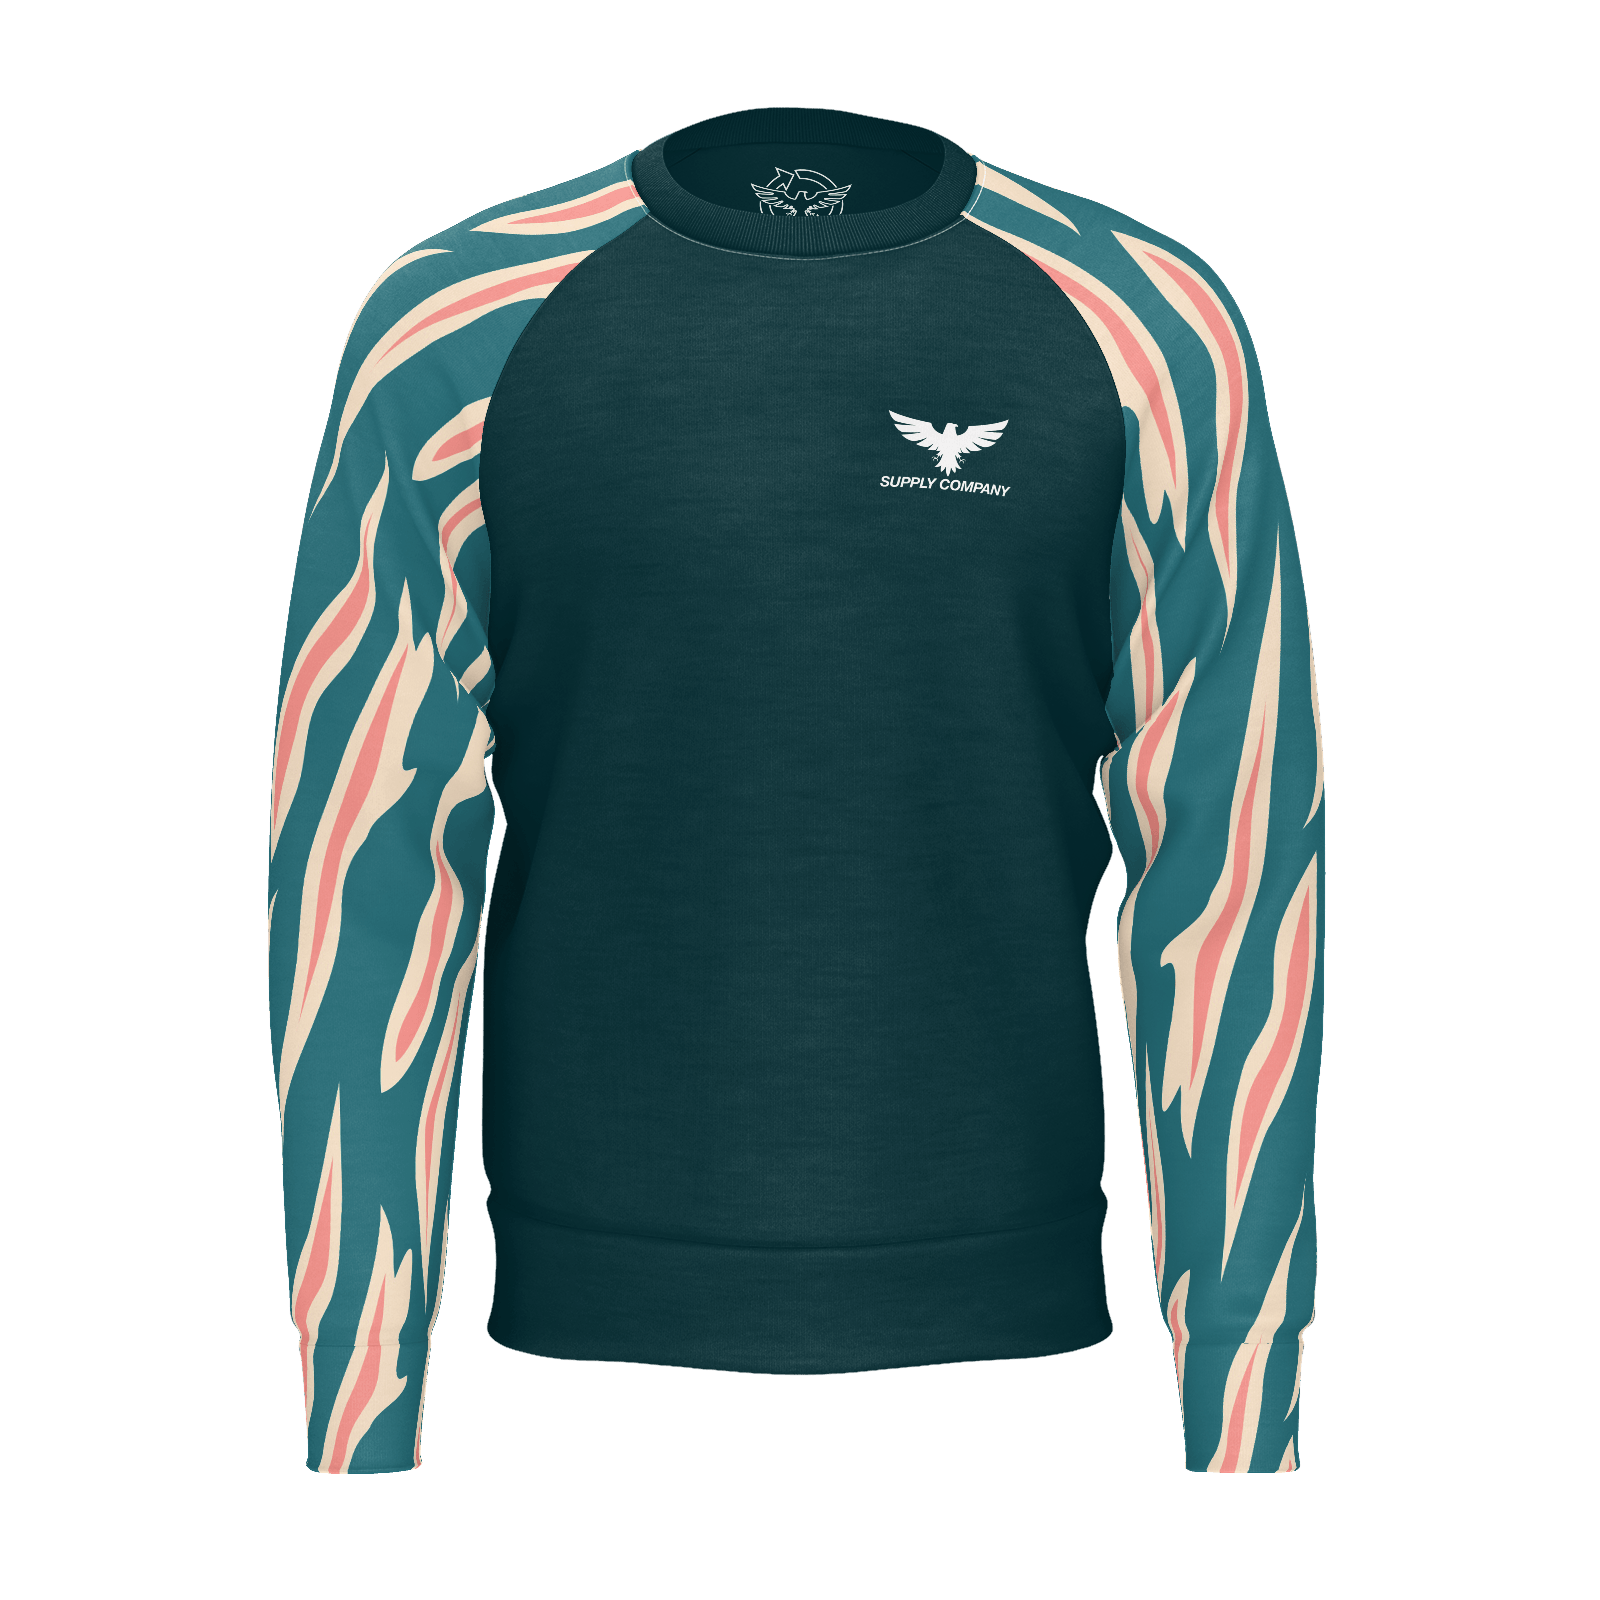 Men's Find Your Coast Caribbean Adventure Lightweight Recycled rPET Raglan Sweatshirt - Find Your Coast Supply Co.